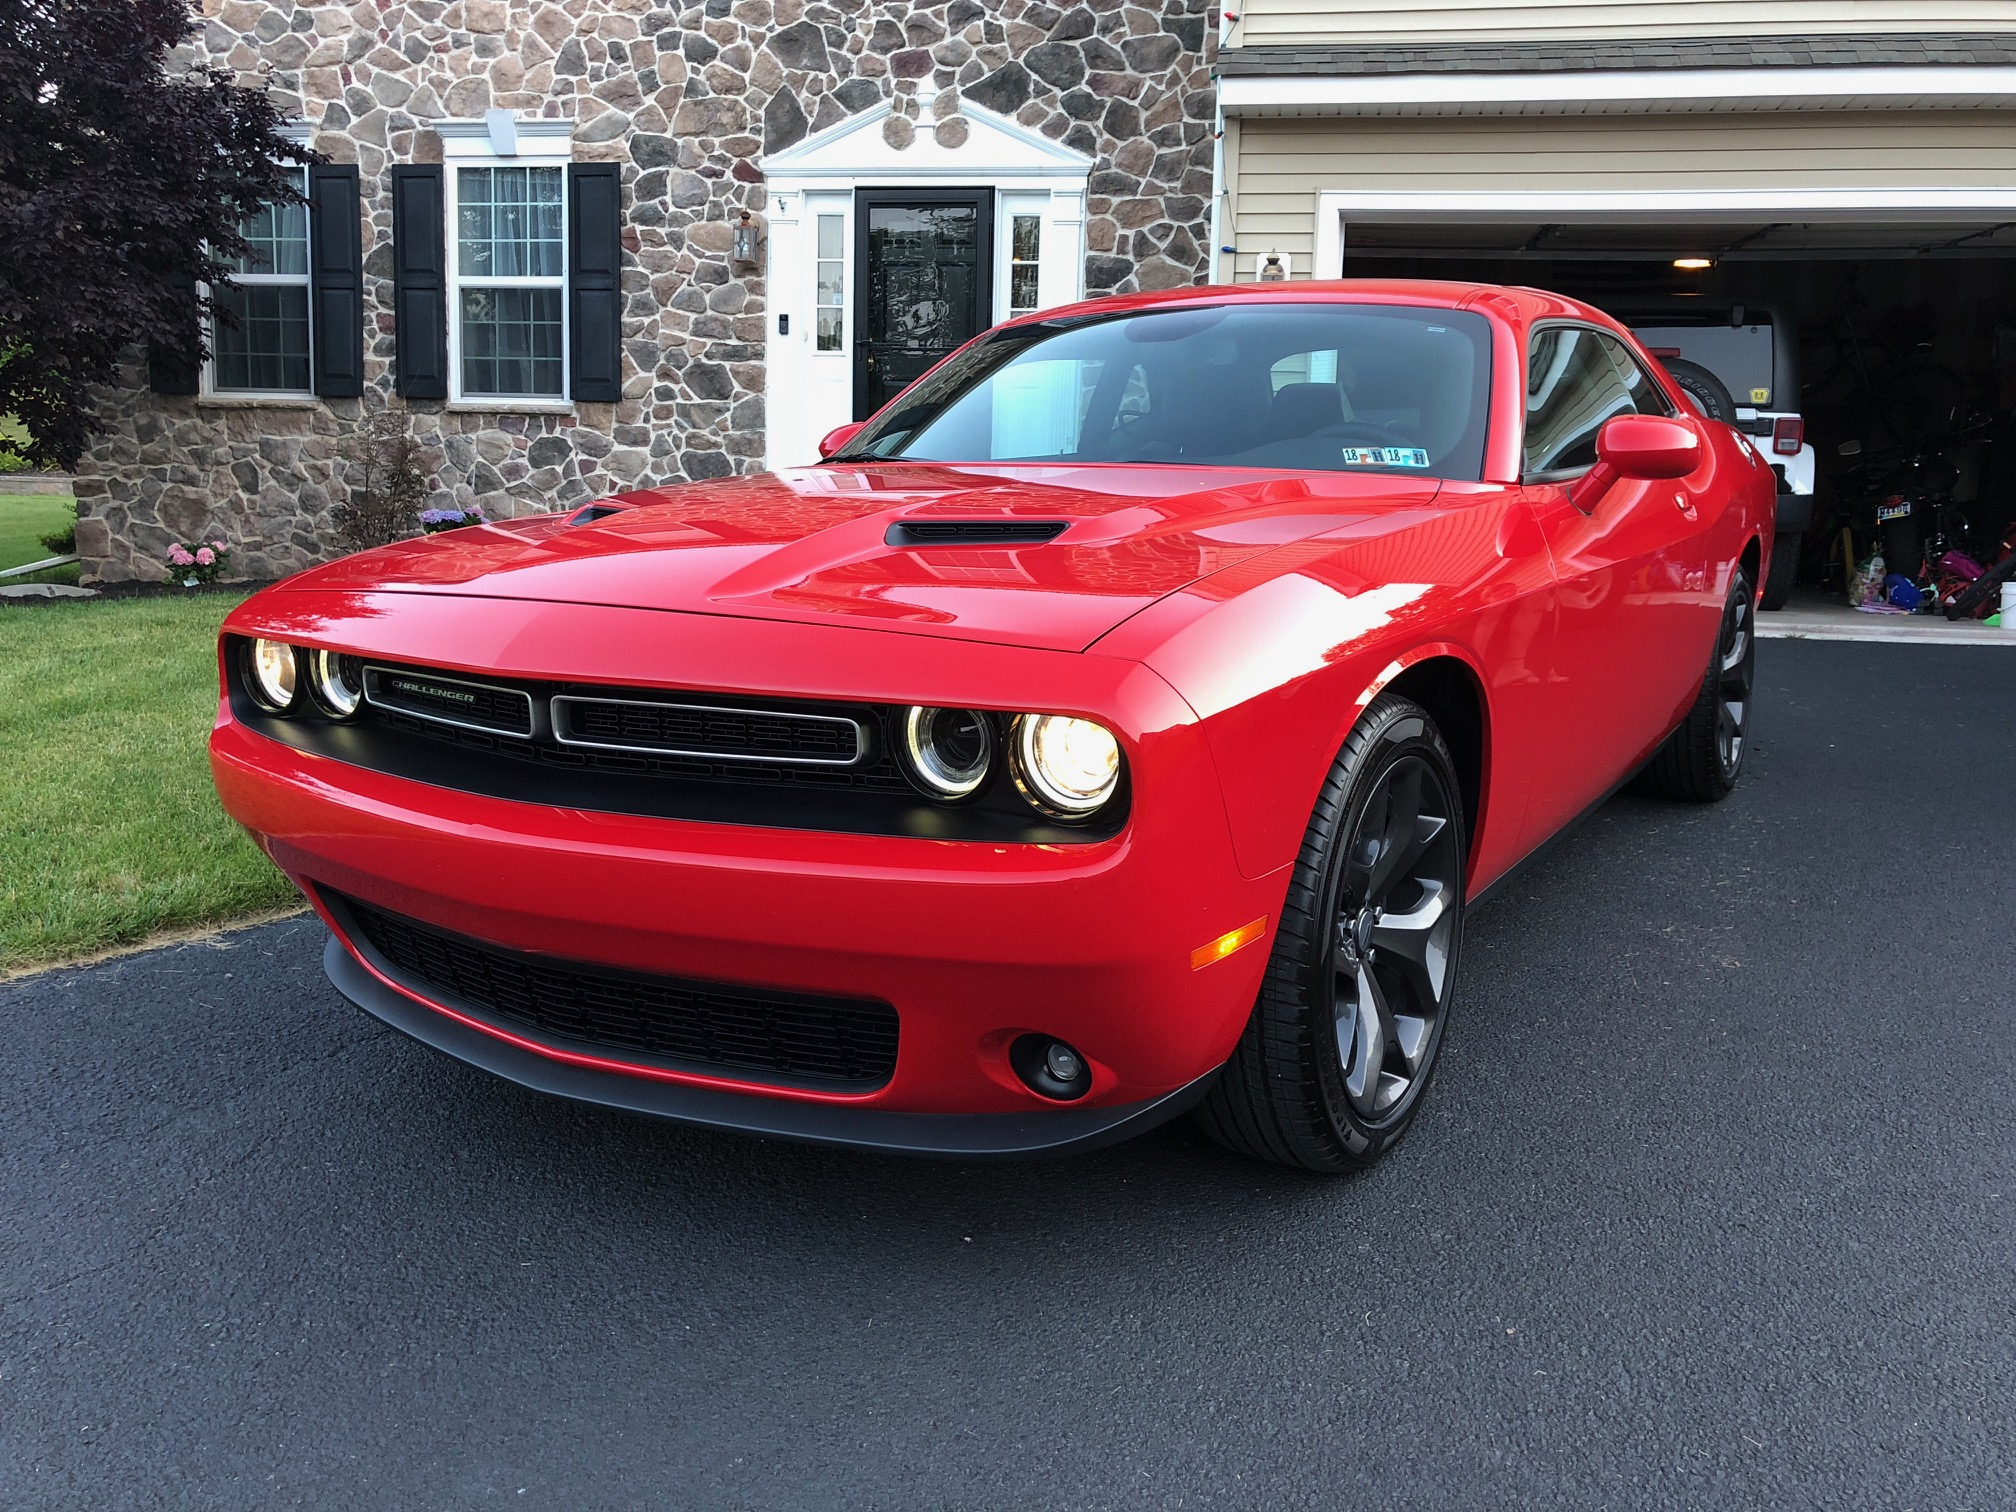 red 2018 dodge challenger parked in the driveway of a suburban home with a stone facade and black shutters